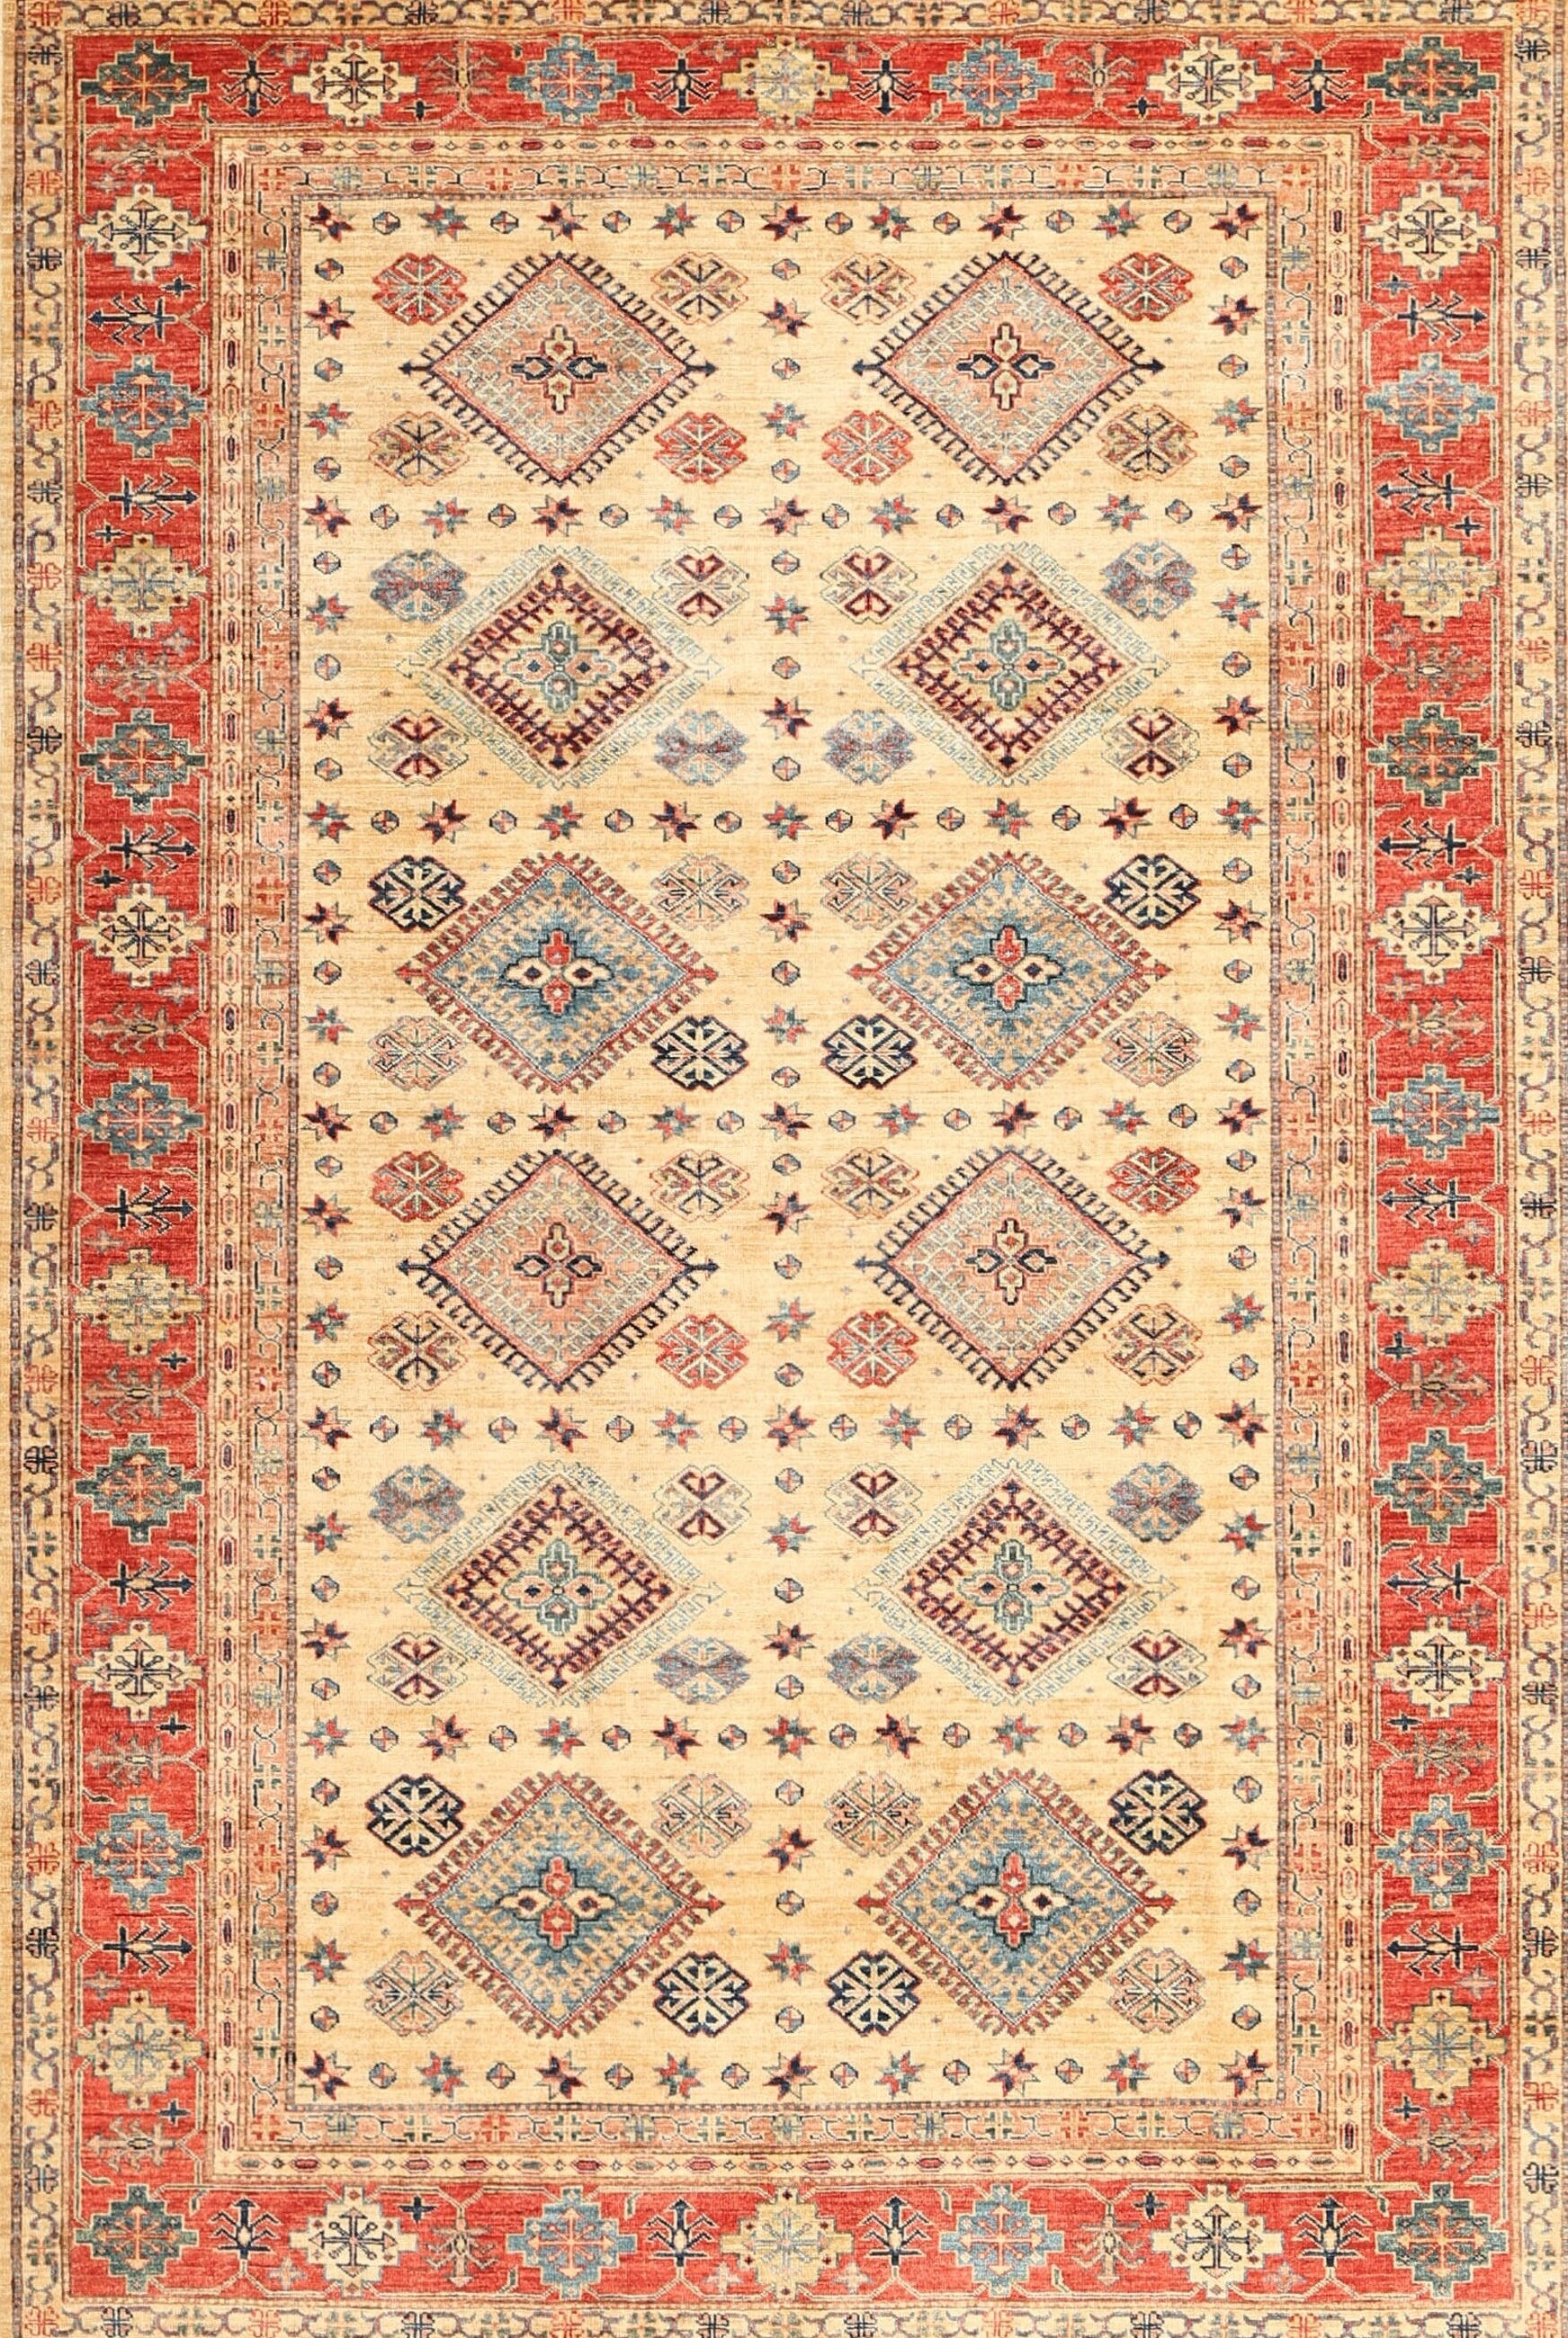 Southwestern Yellow Gold Area Rugs You Ll Love In 2021 Wayfair